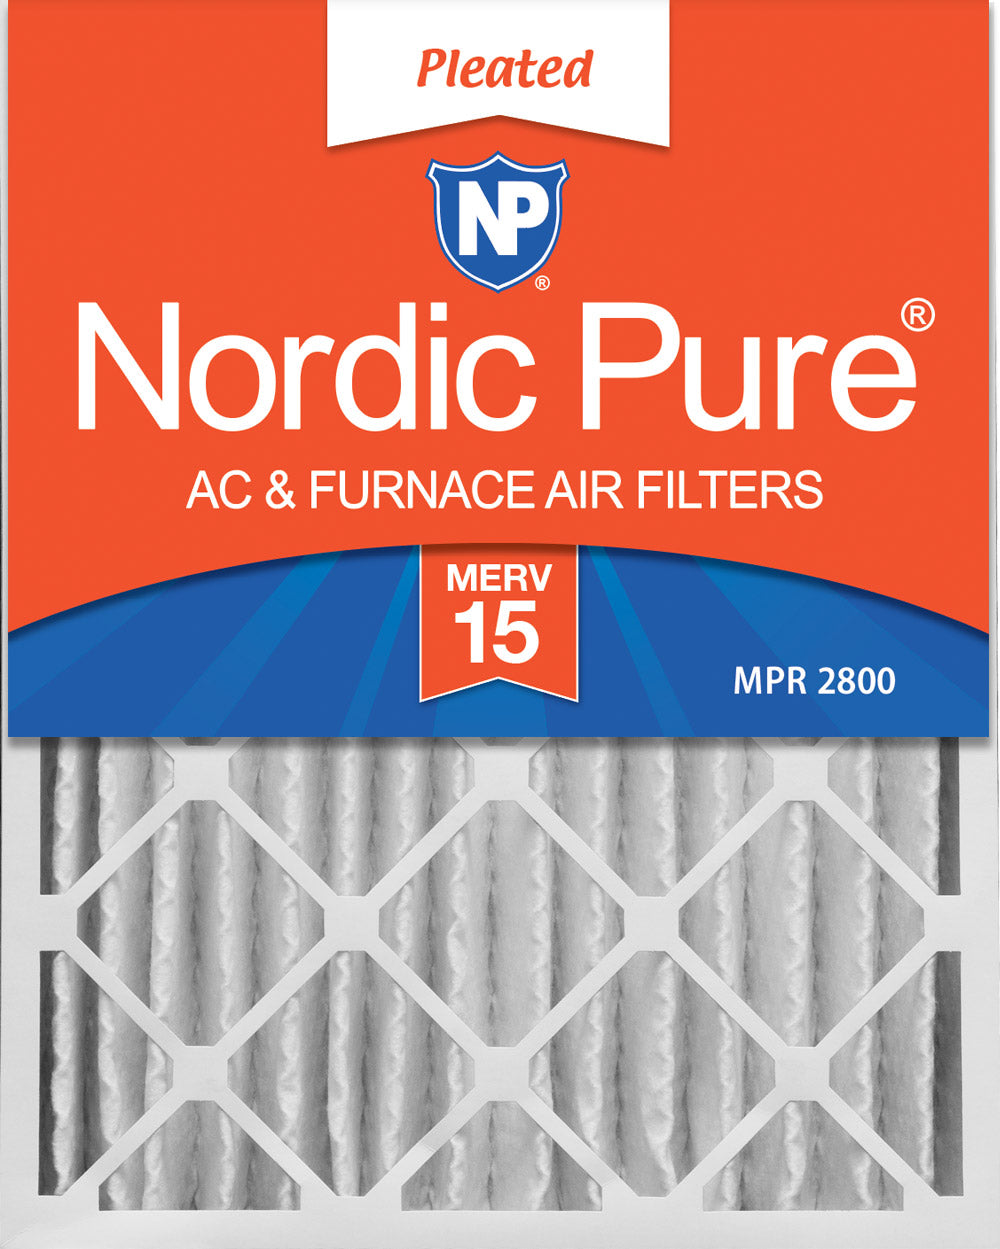 16x20x4 (3 5/8) Pleated MERV 15 Air Filters 1 Pack